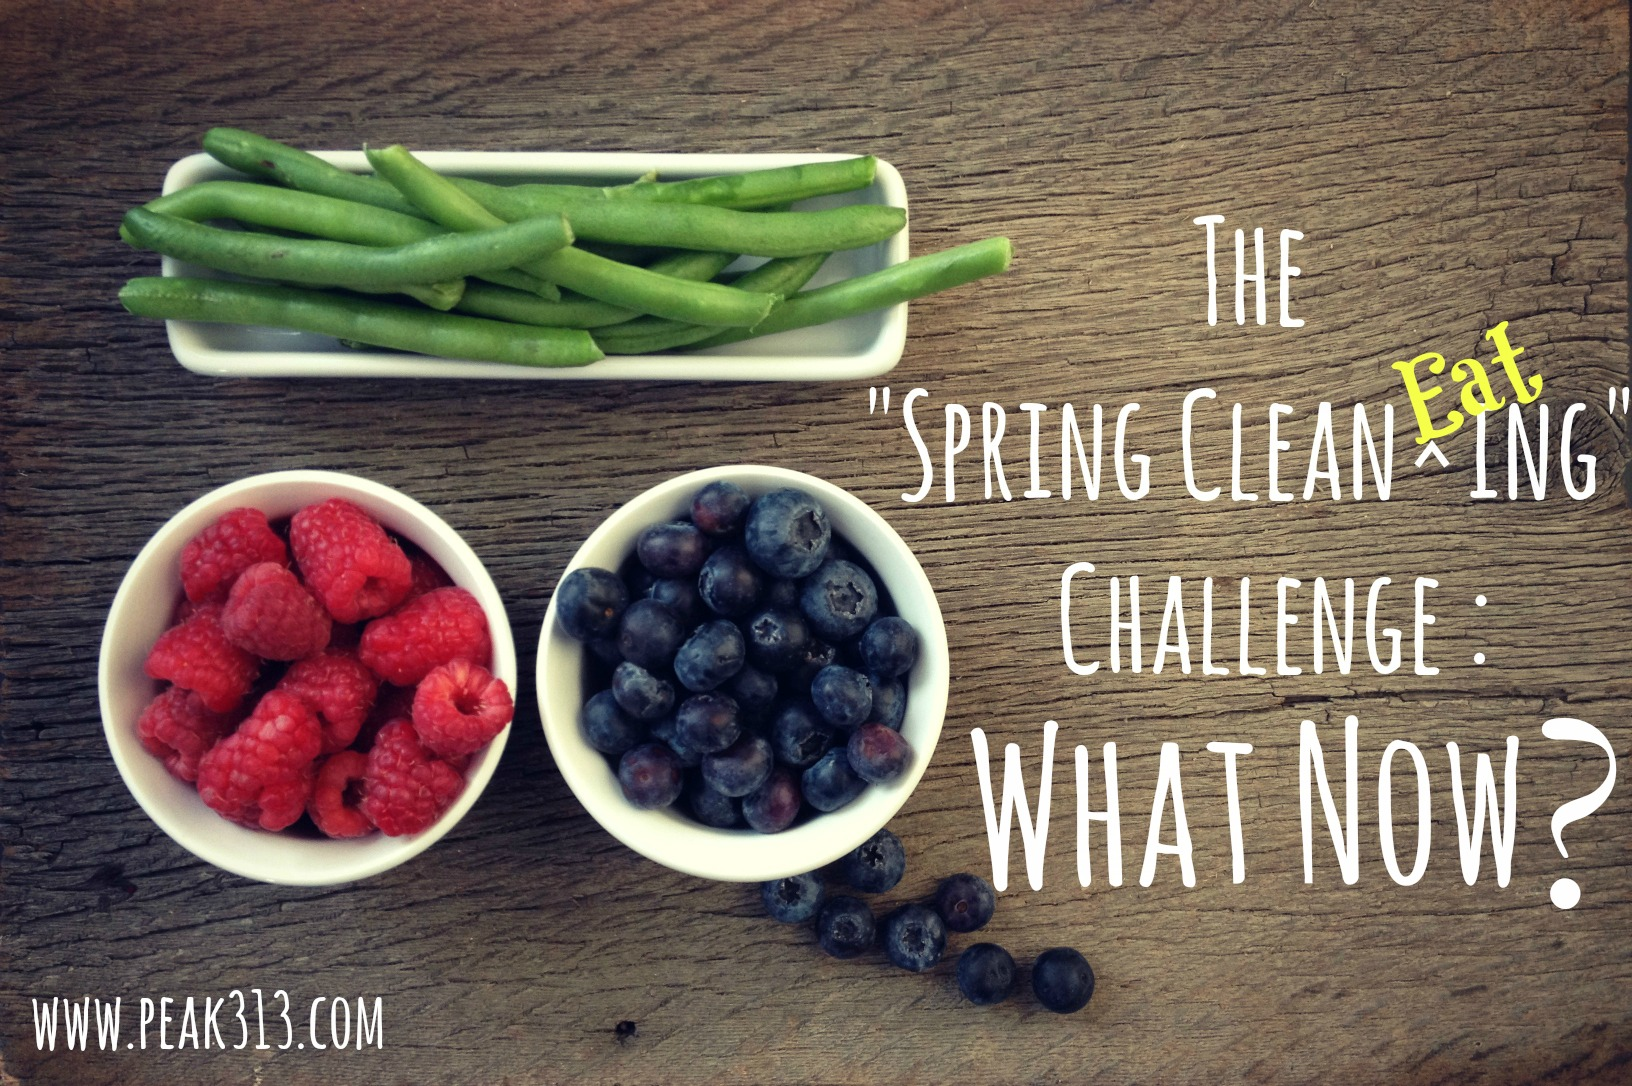 """The """"Spring Clean EATing"""" Challenge : What Now? (& check-in) : peak313.com"""